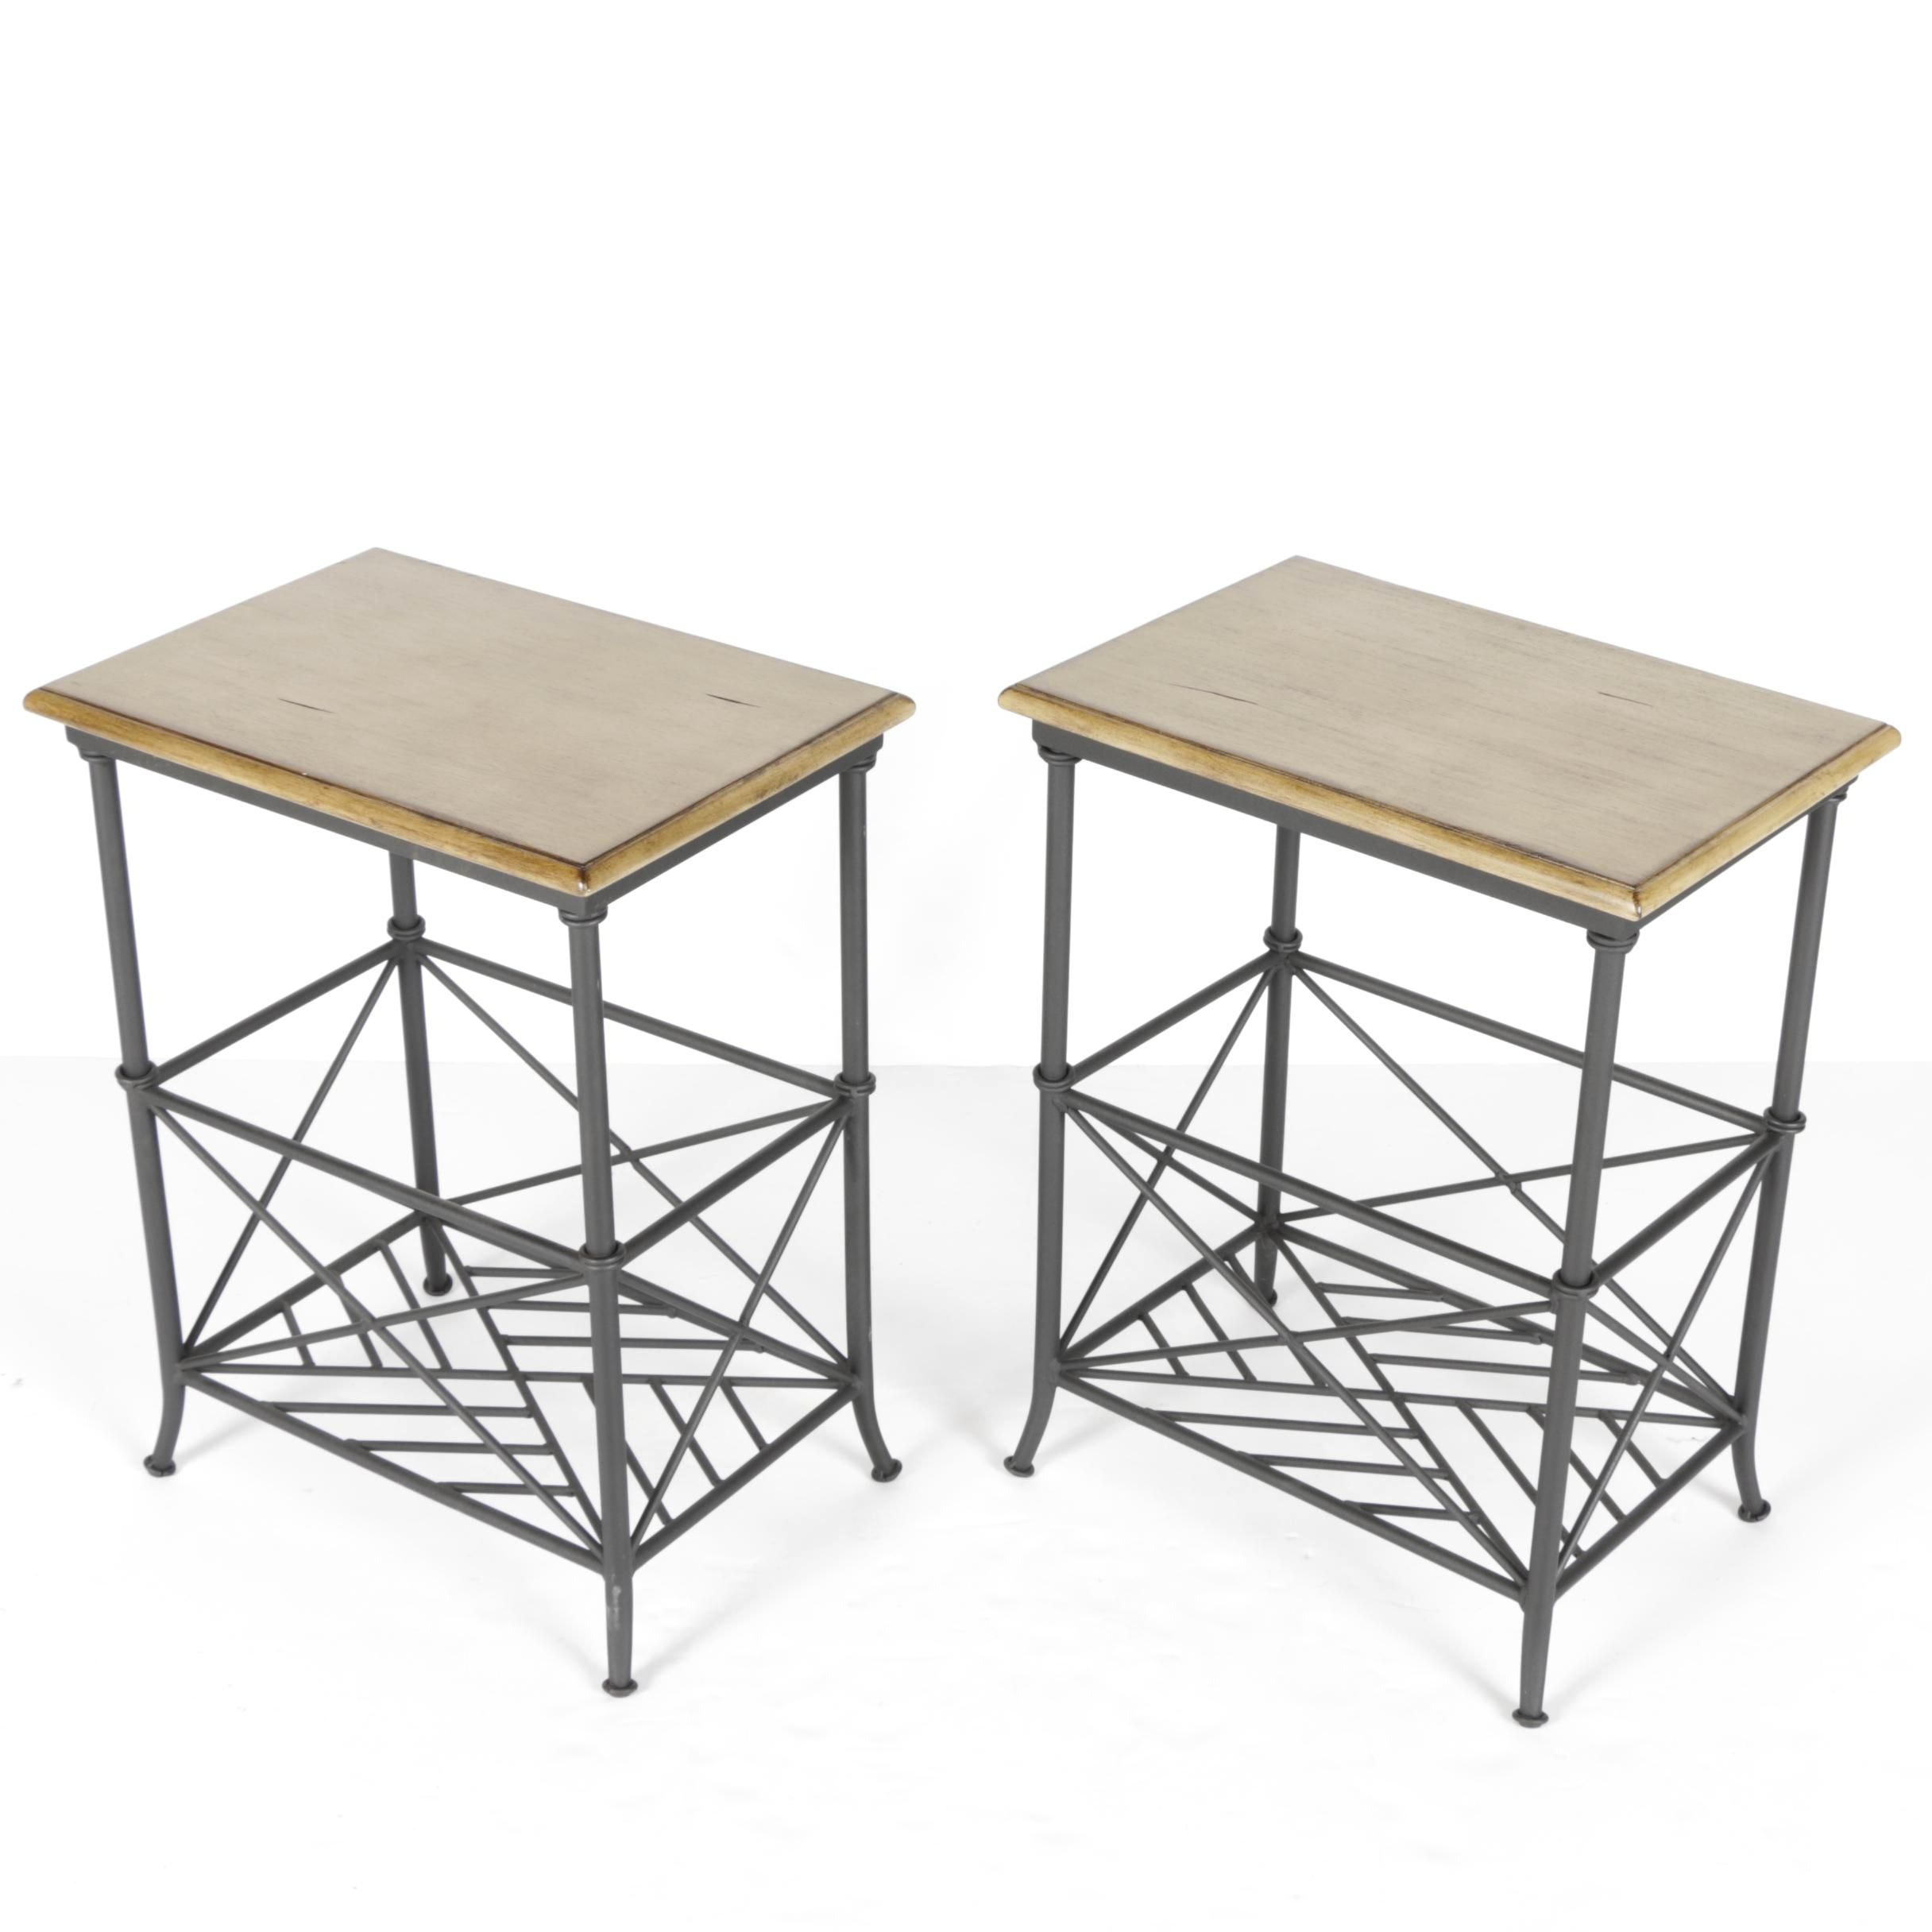 Pair of Wooden-Topped End Tables by Ballard Designs